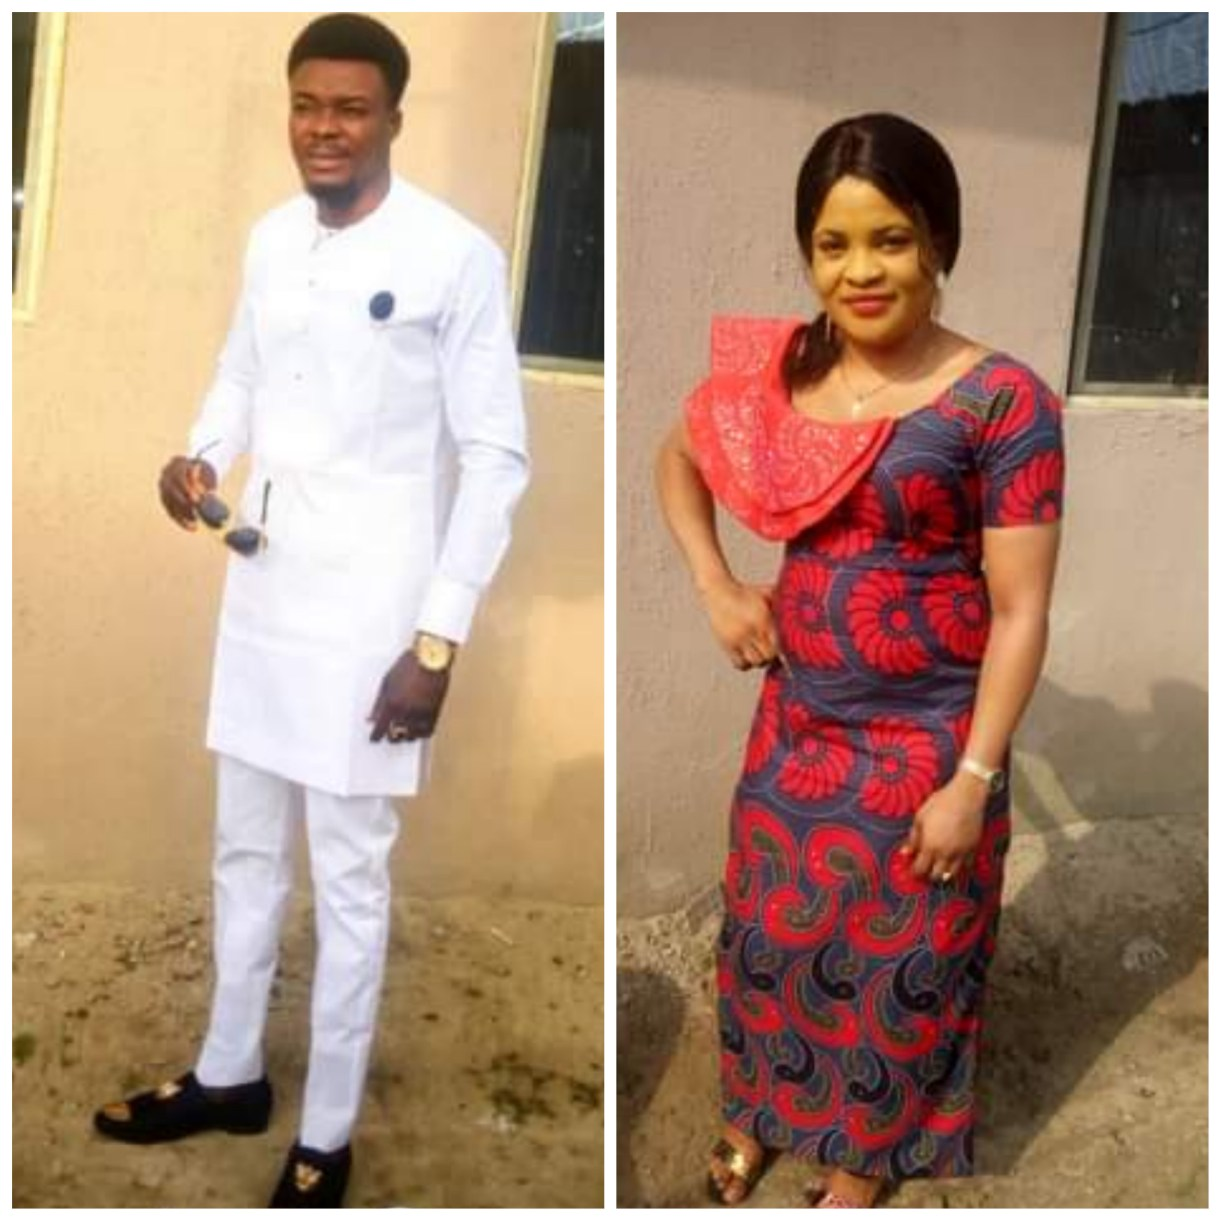 Lovers found dead in their apartment in Delta. Suicide suspected